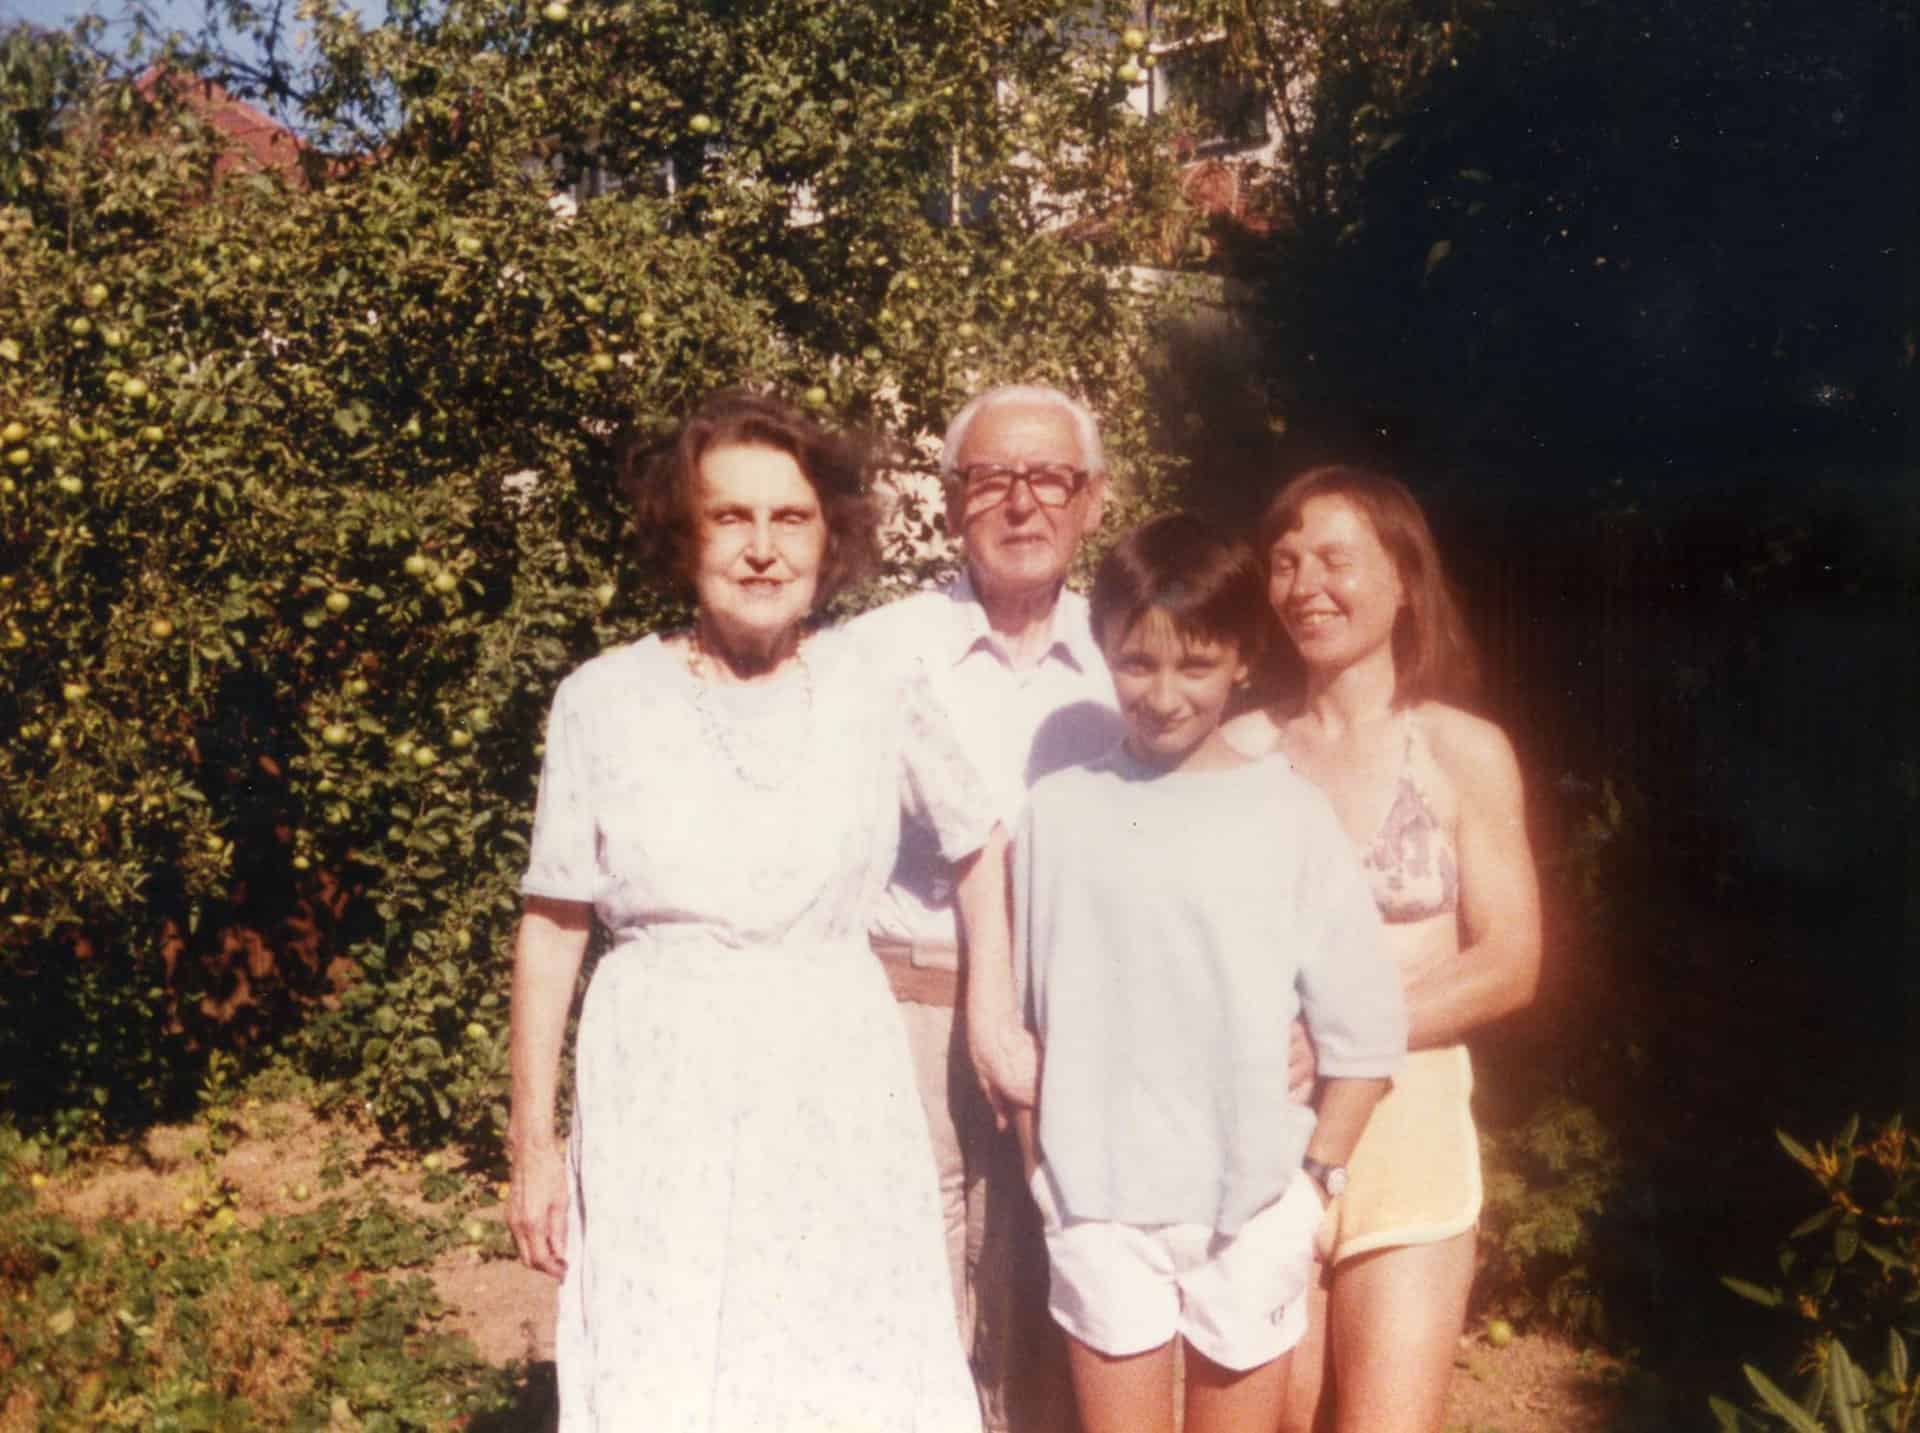 Left to right: Marjorie, Charles Edward, Joseph and Jenny Potts, Carters Lane, Halesowen, 1984